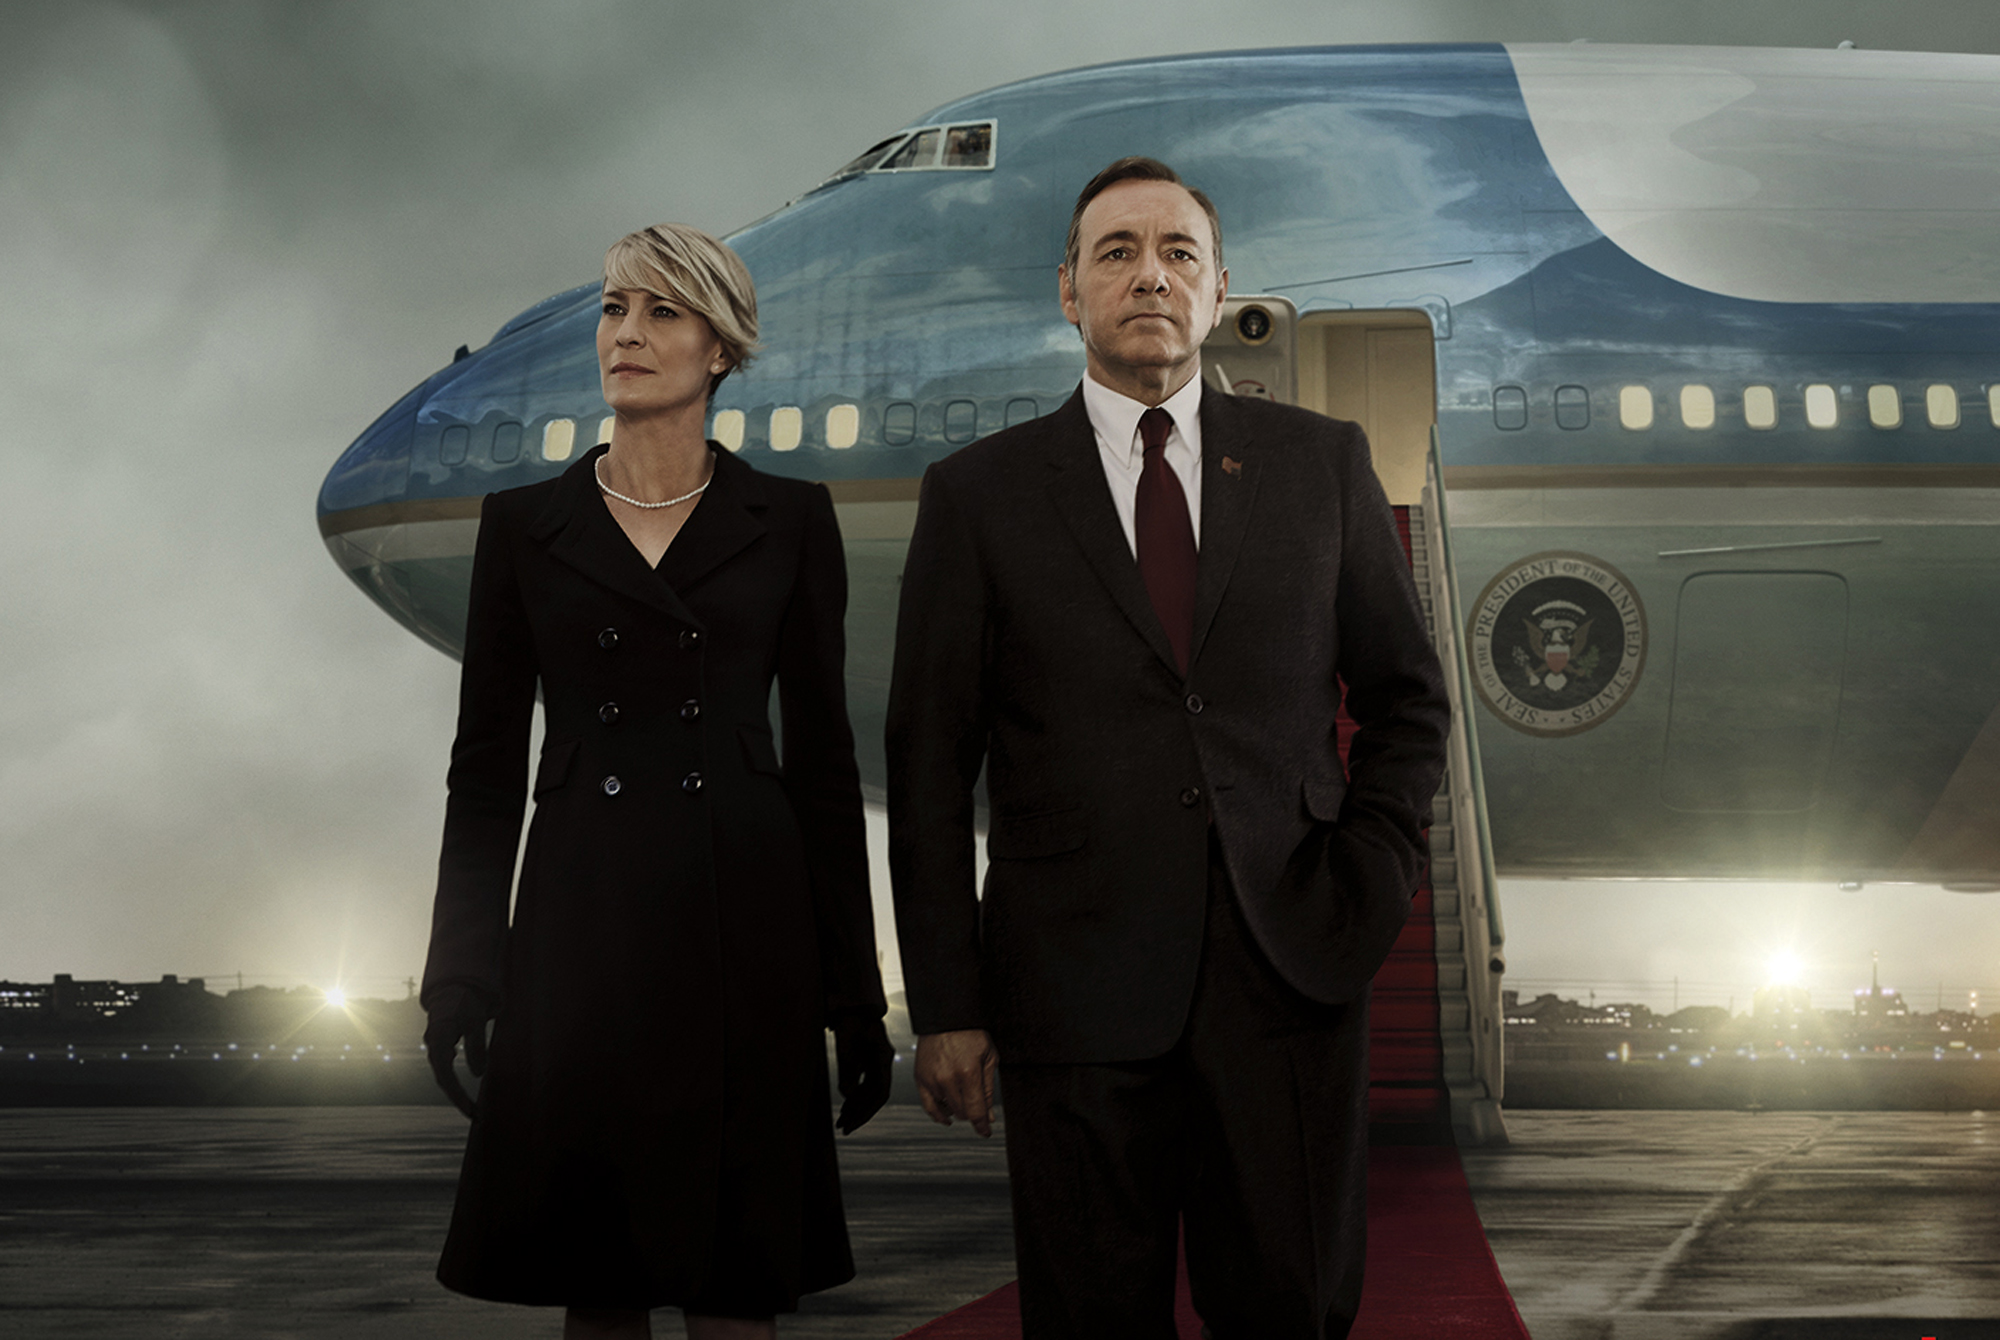 'House of Cards' season 3: President and Mrs. Underwood will see you now